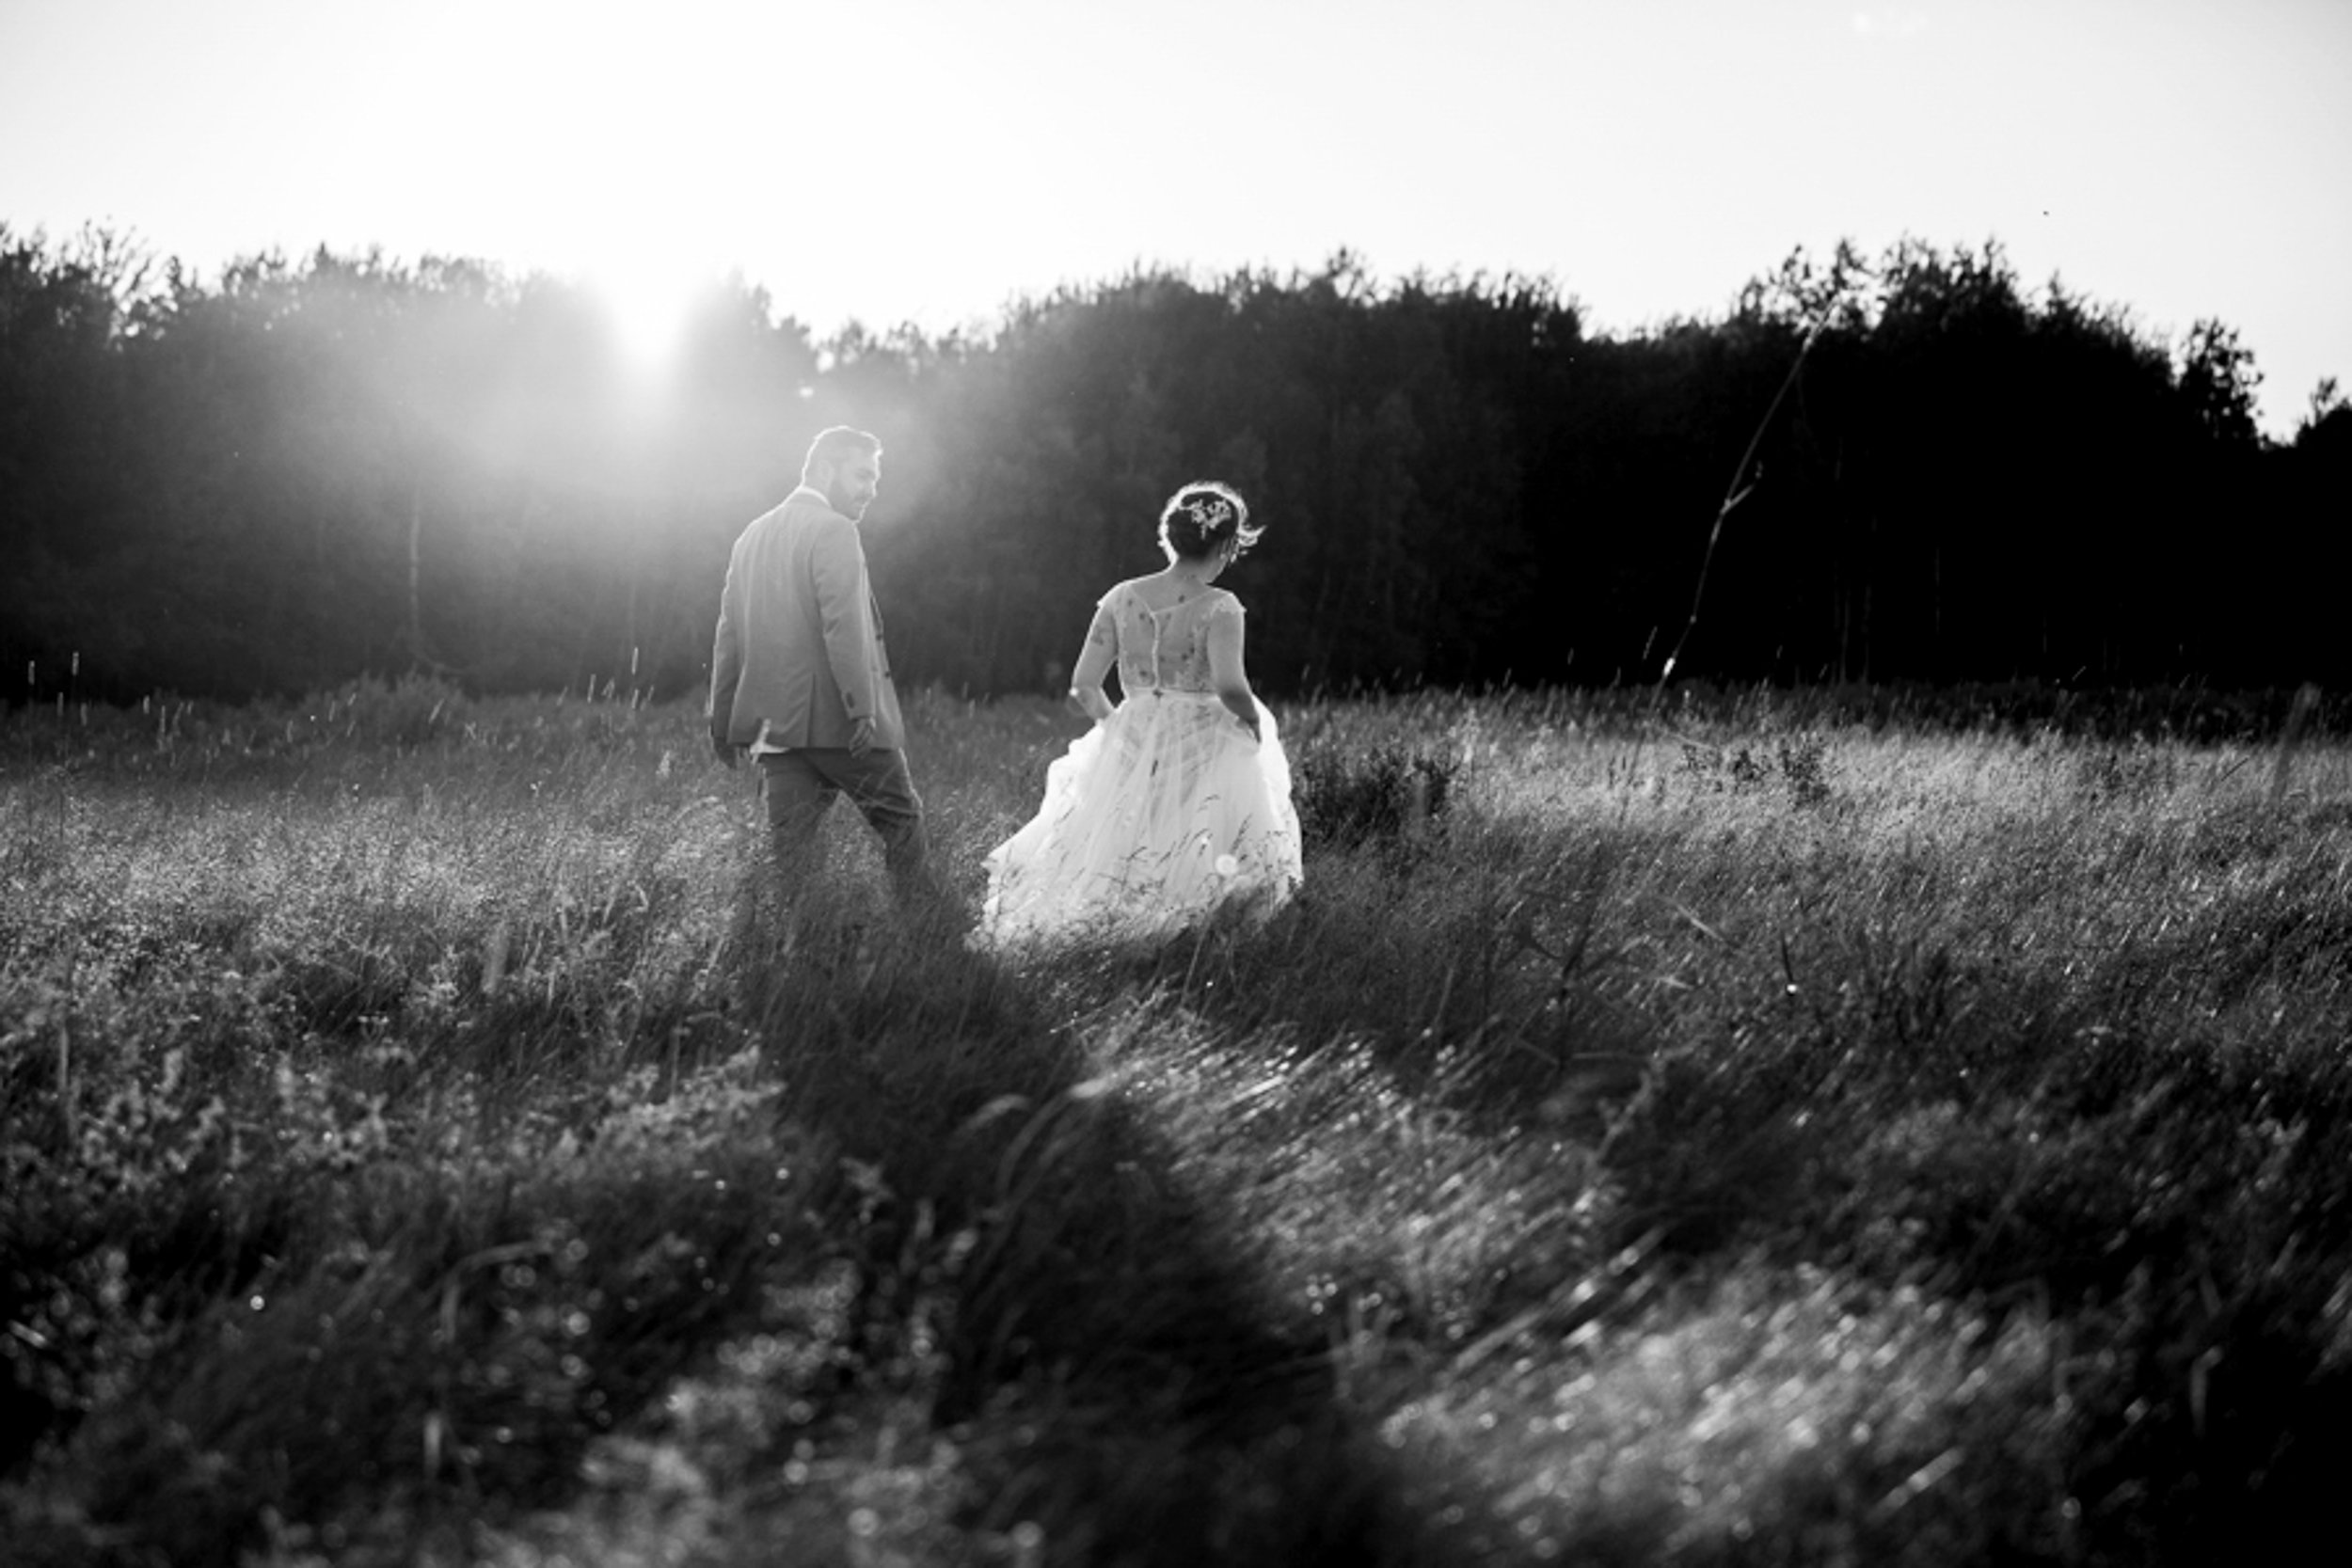 moncton_wedding_photographer_caro_photo-50.jpg